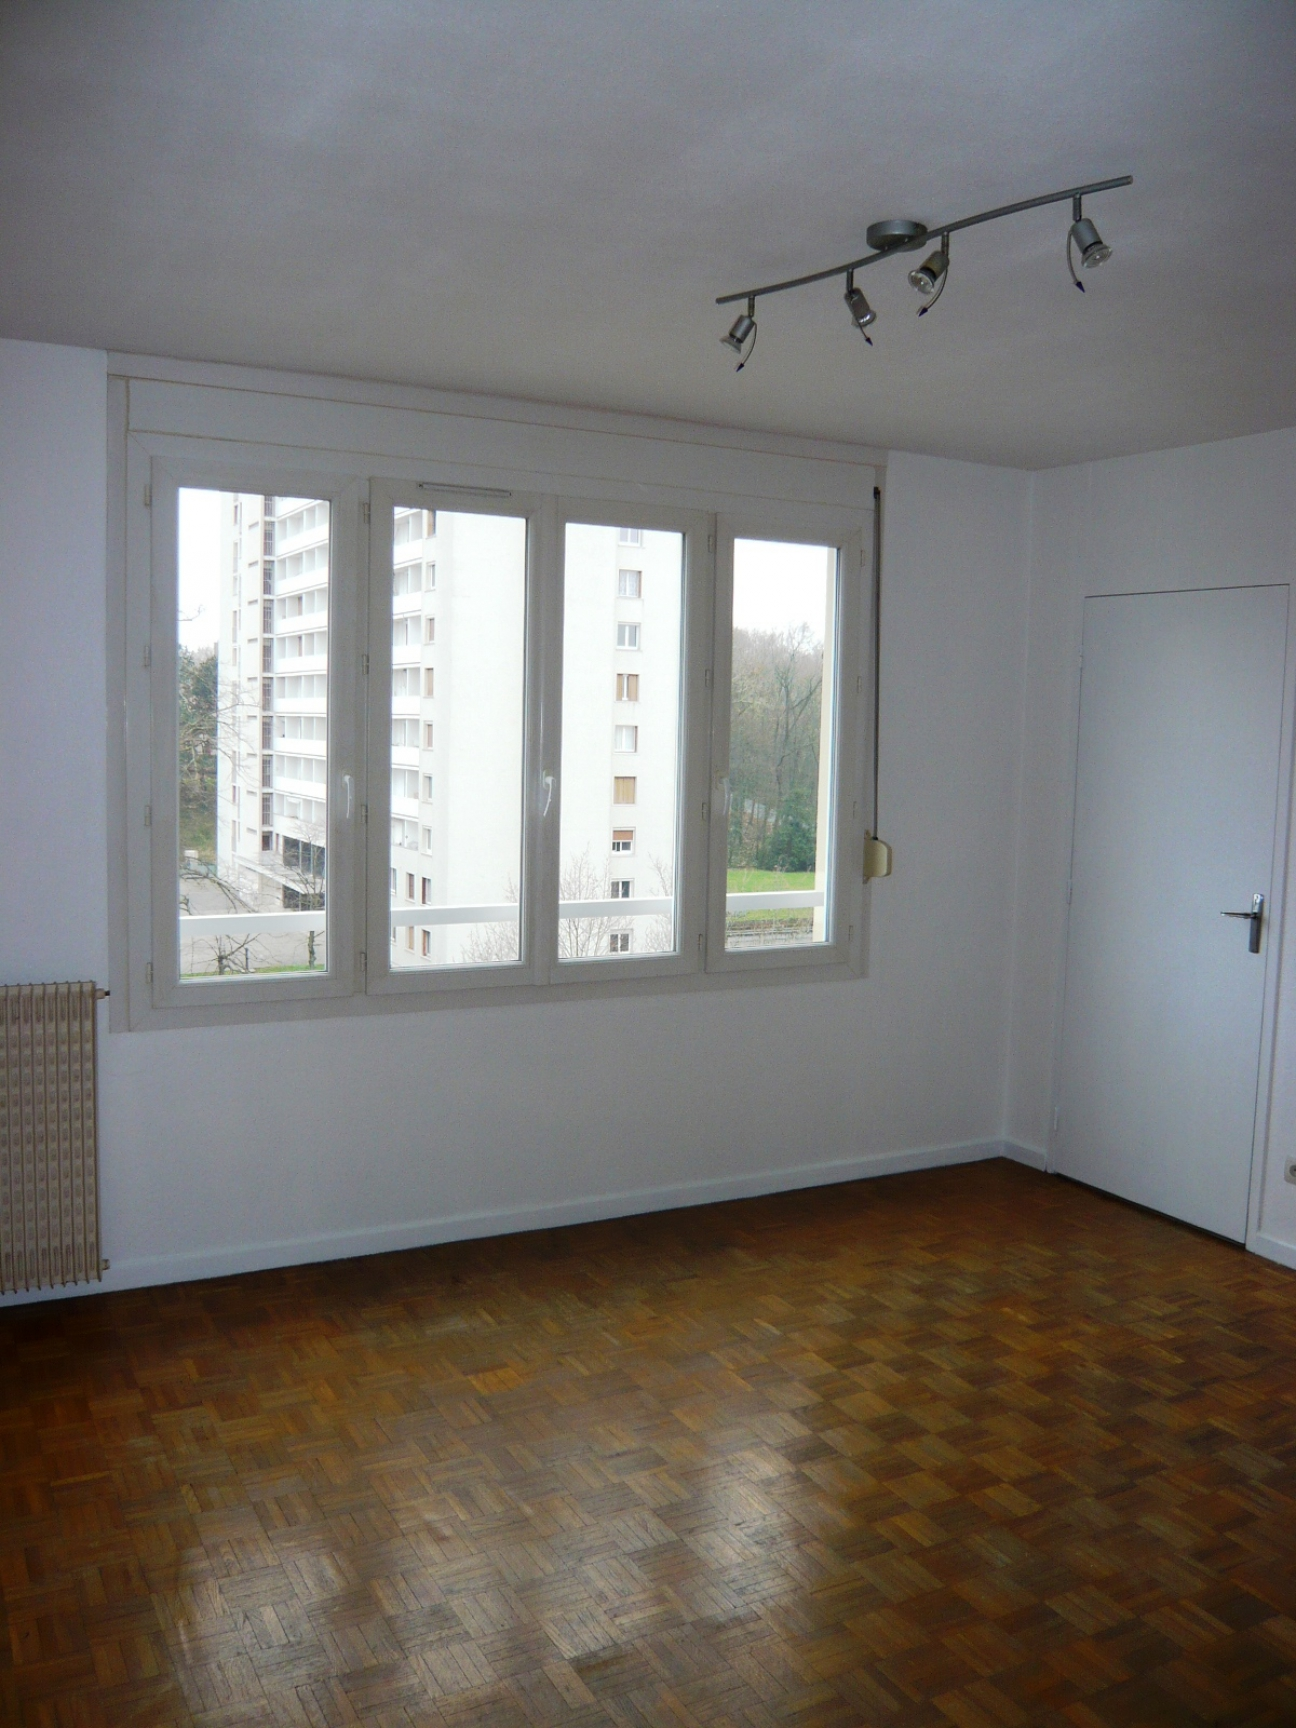 Photos de Appartement à Lyon (69005)